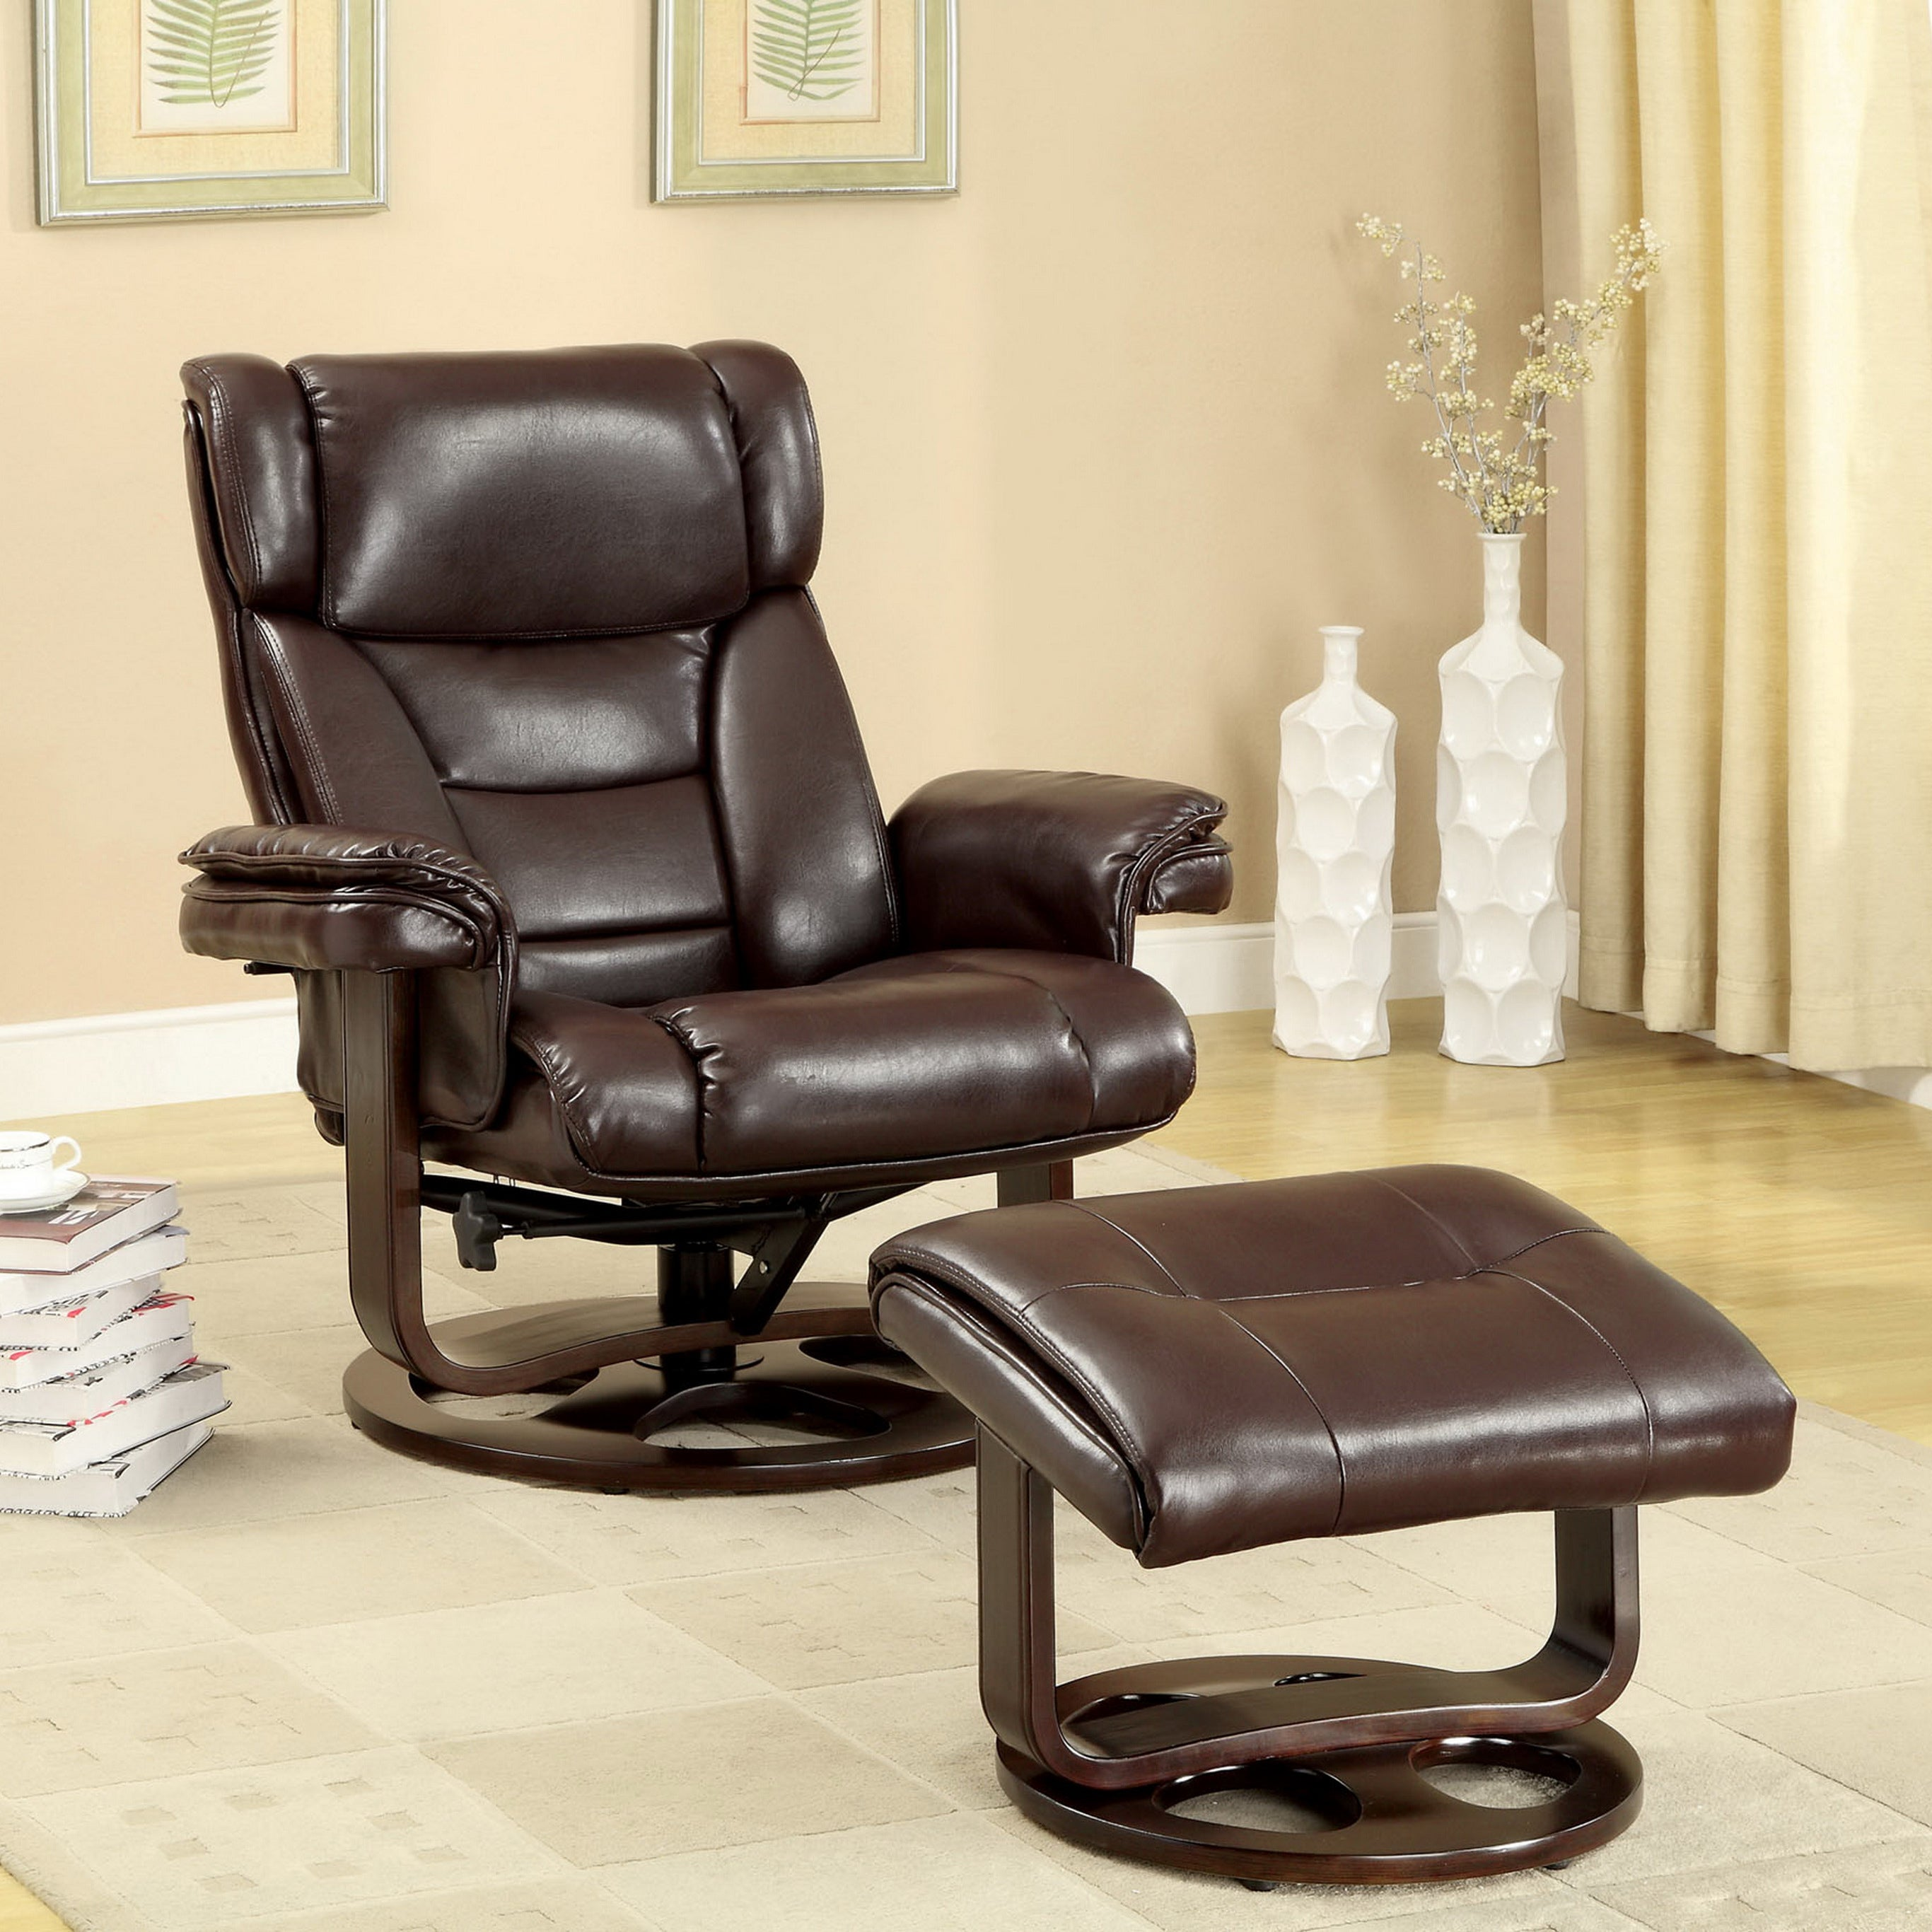 Furniture of America Brown Bonded Leather Swivel Recliner with Ottoman Set at Sears.com